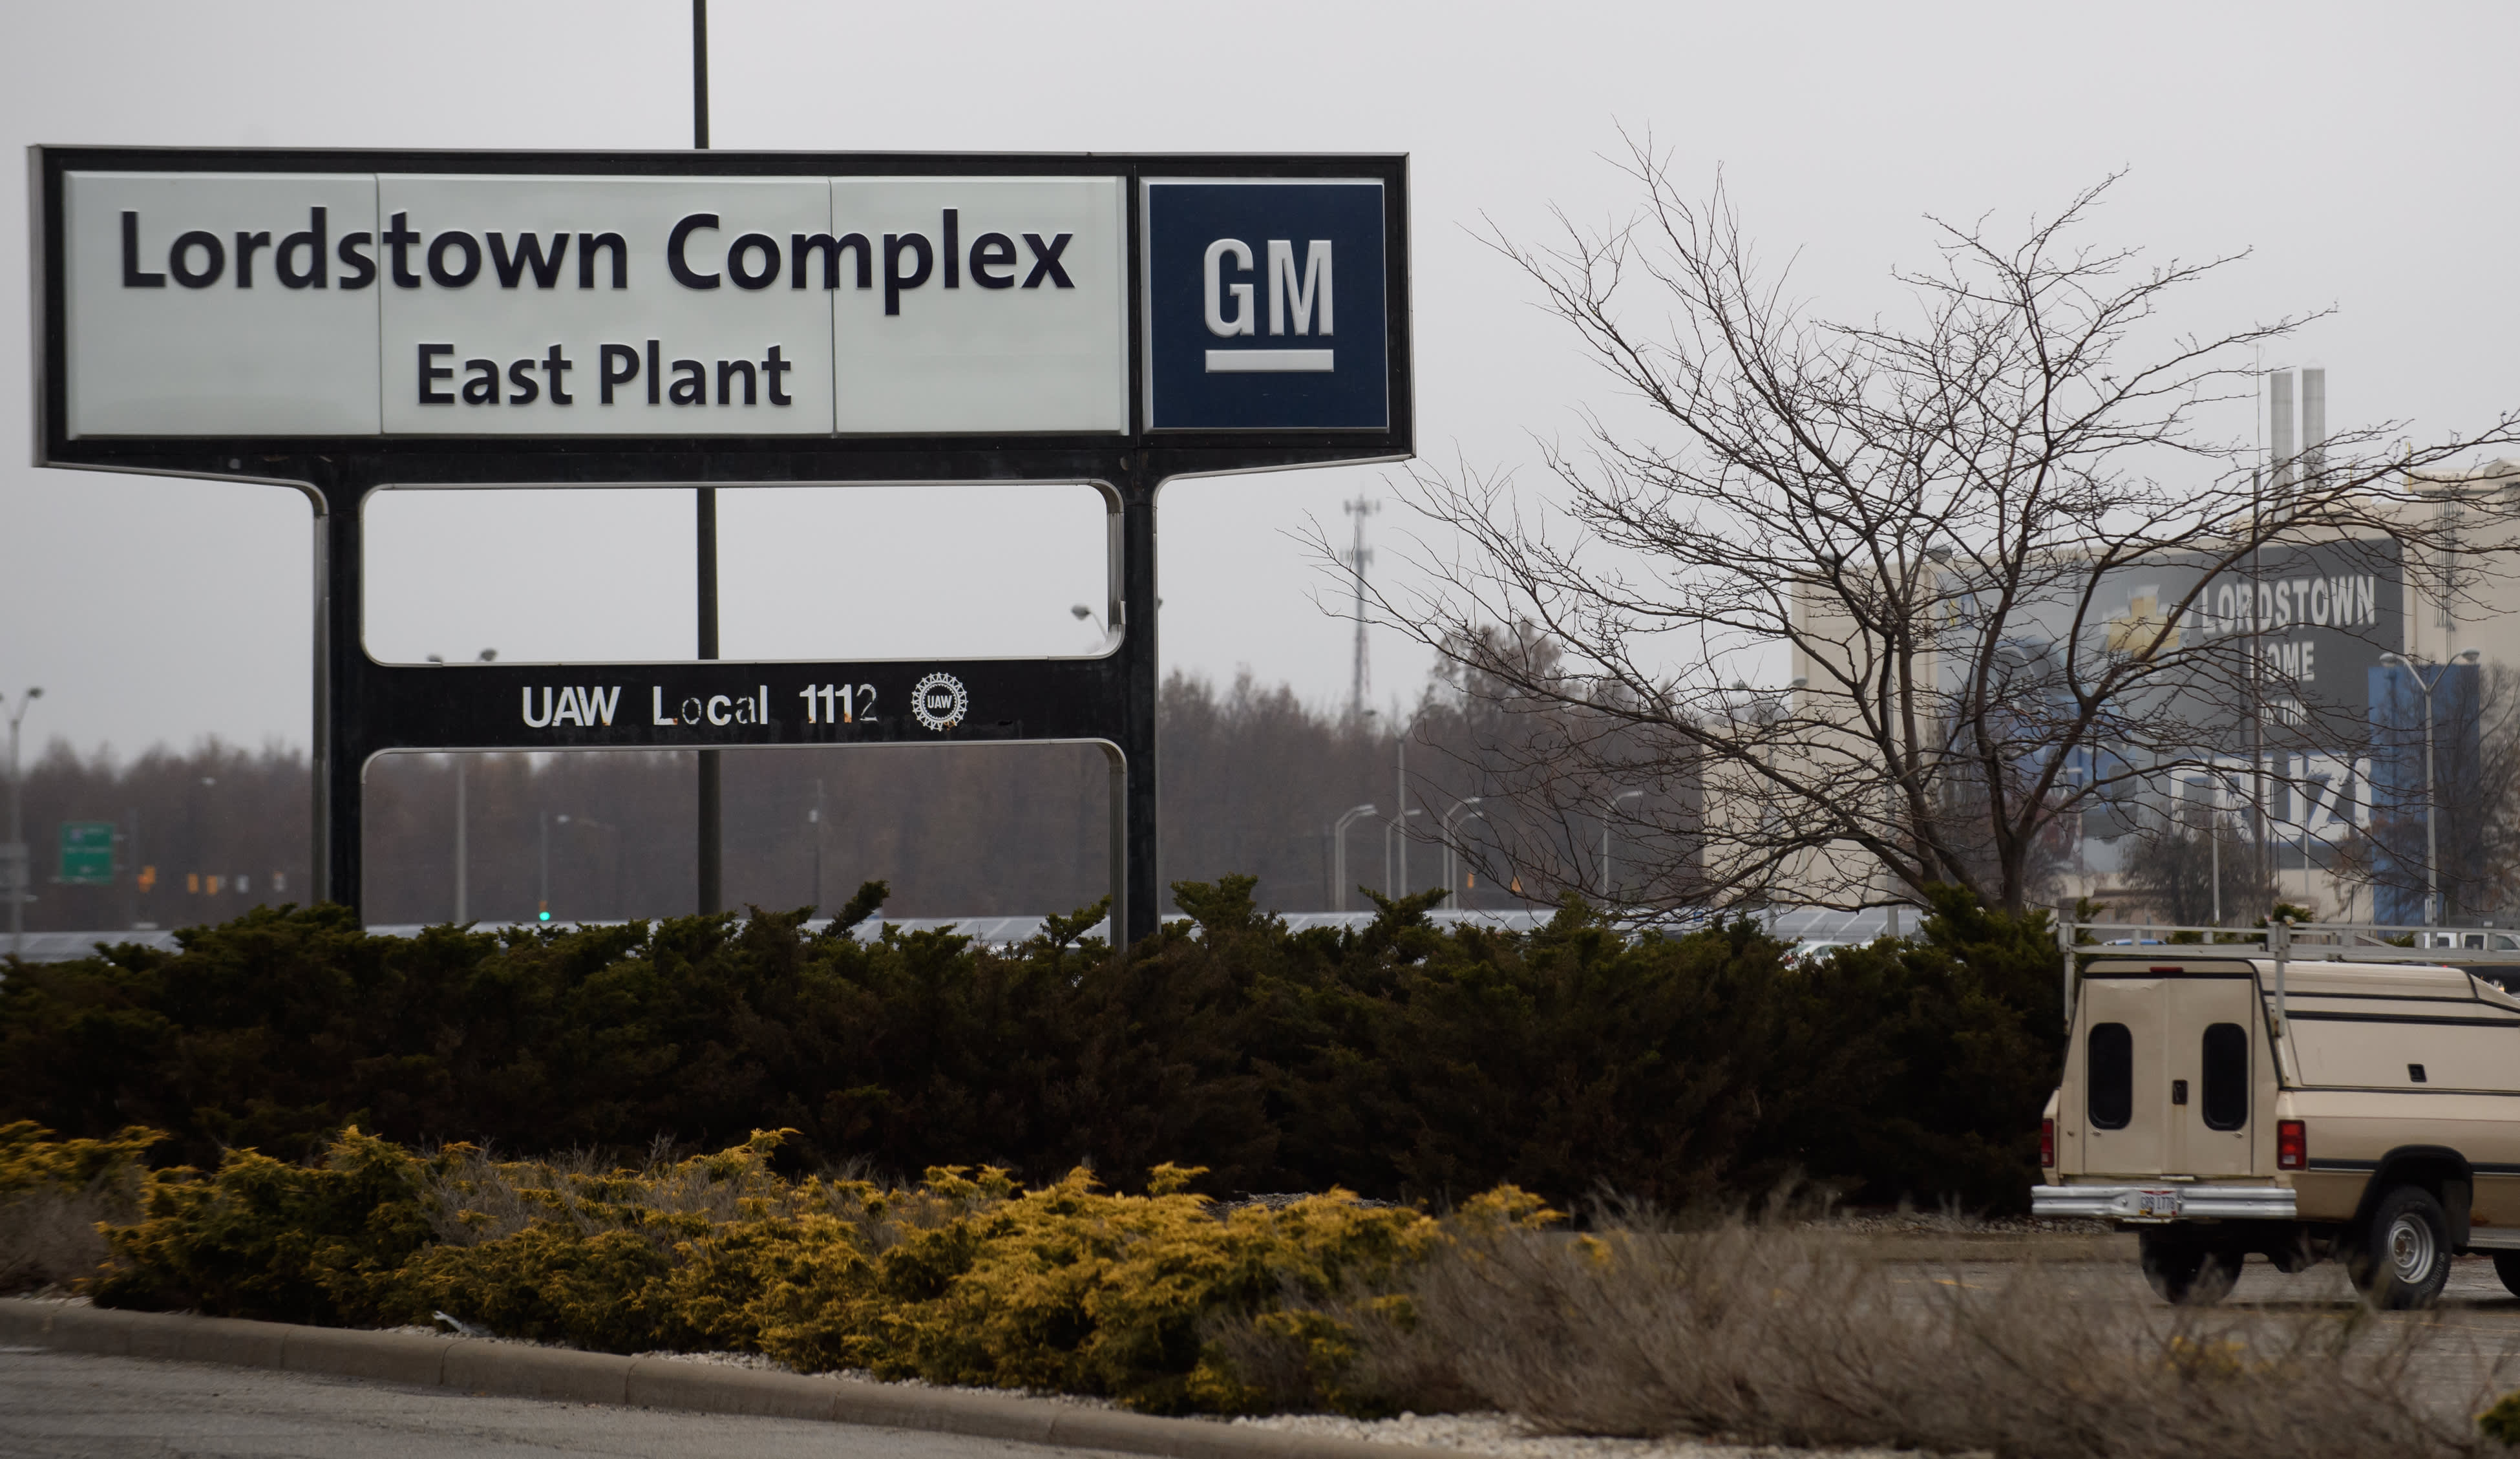 General Motors hints it could negotiate a way to keep one or more plants open